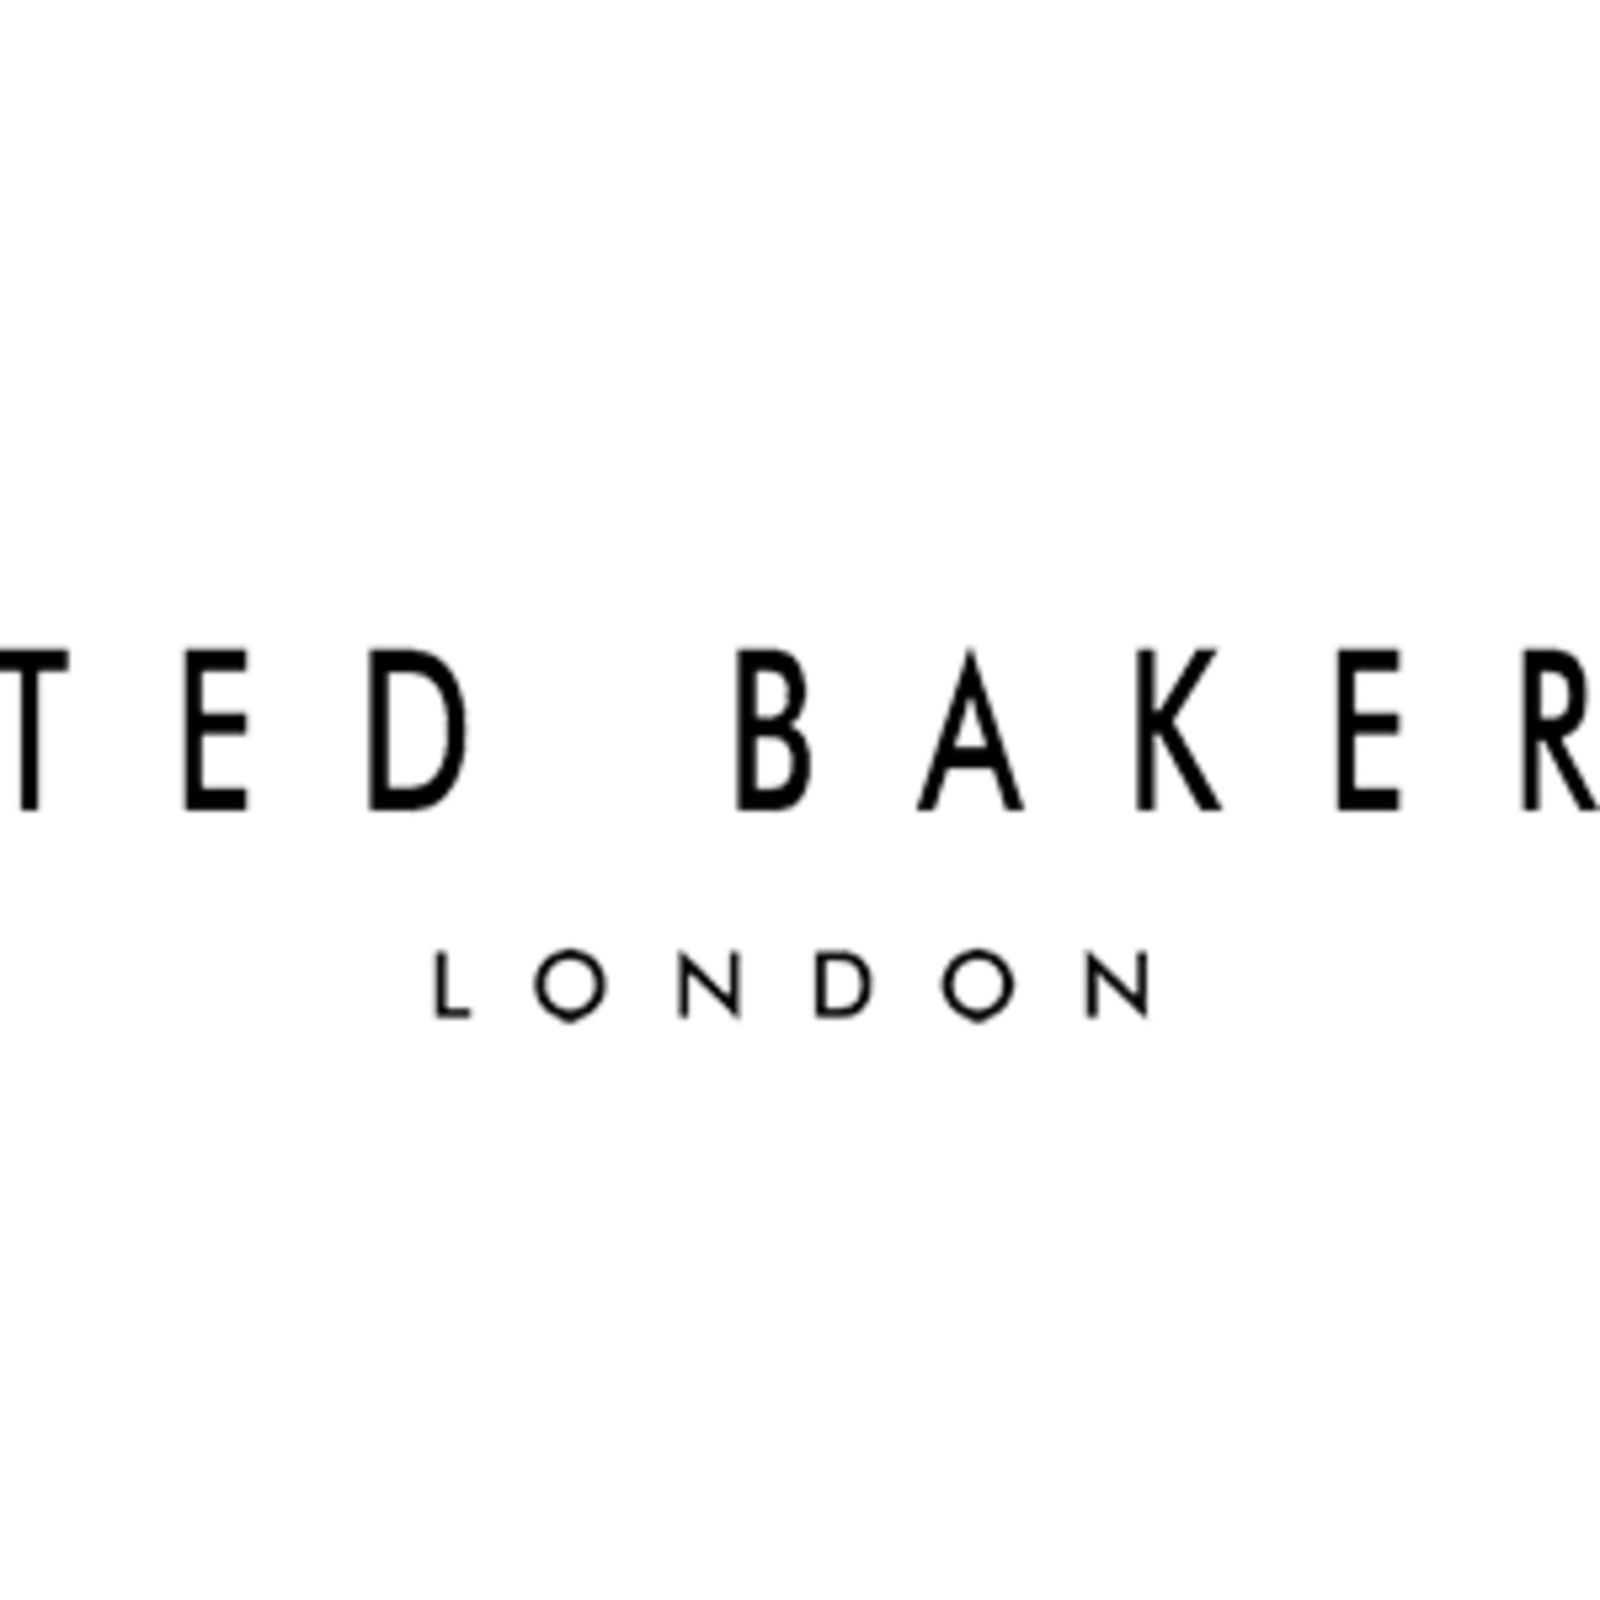 TED BAKER (Image 1)